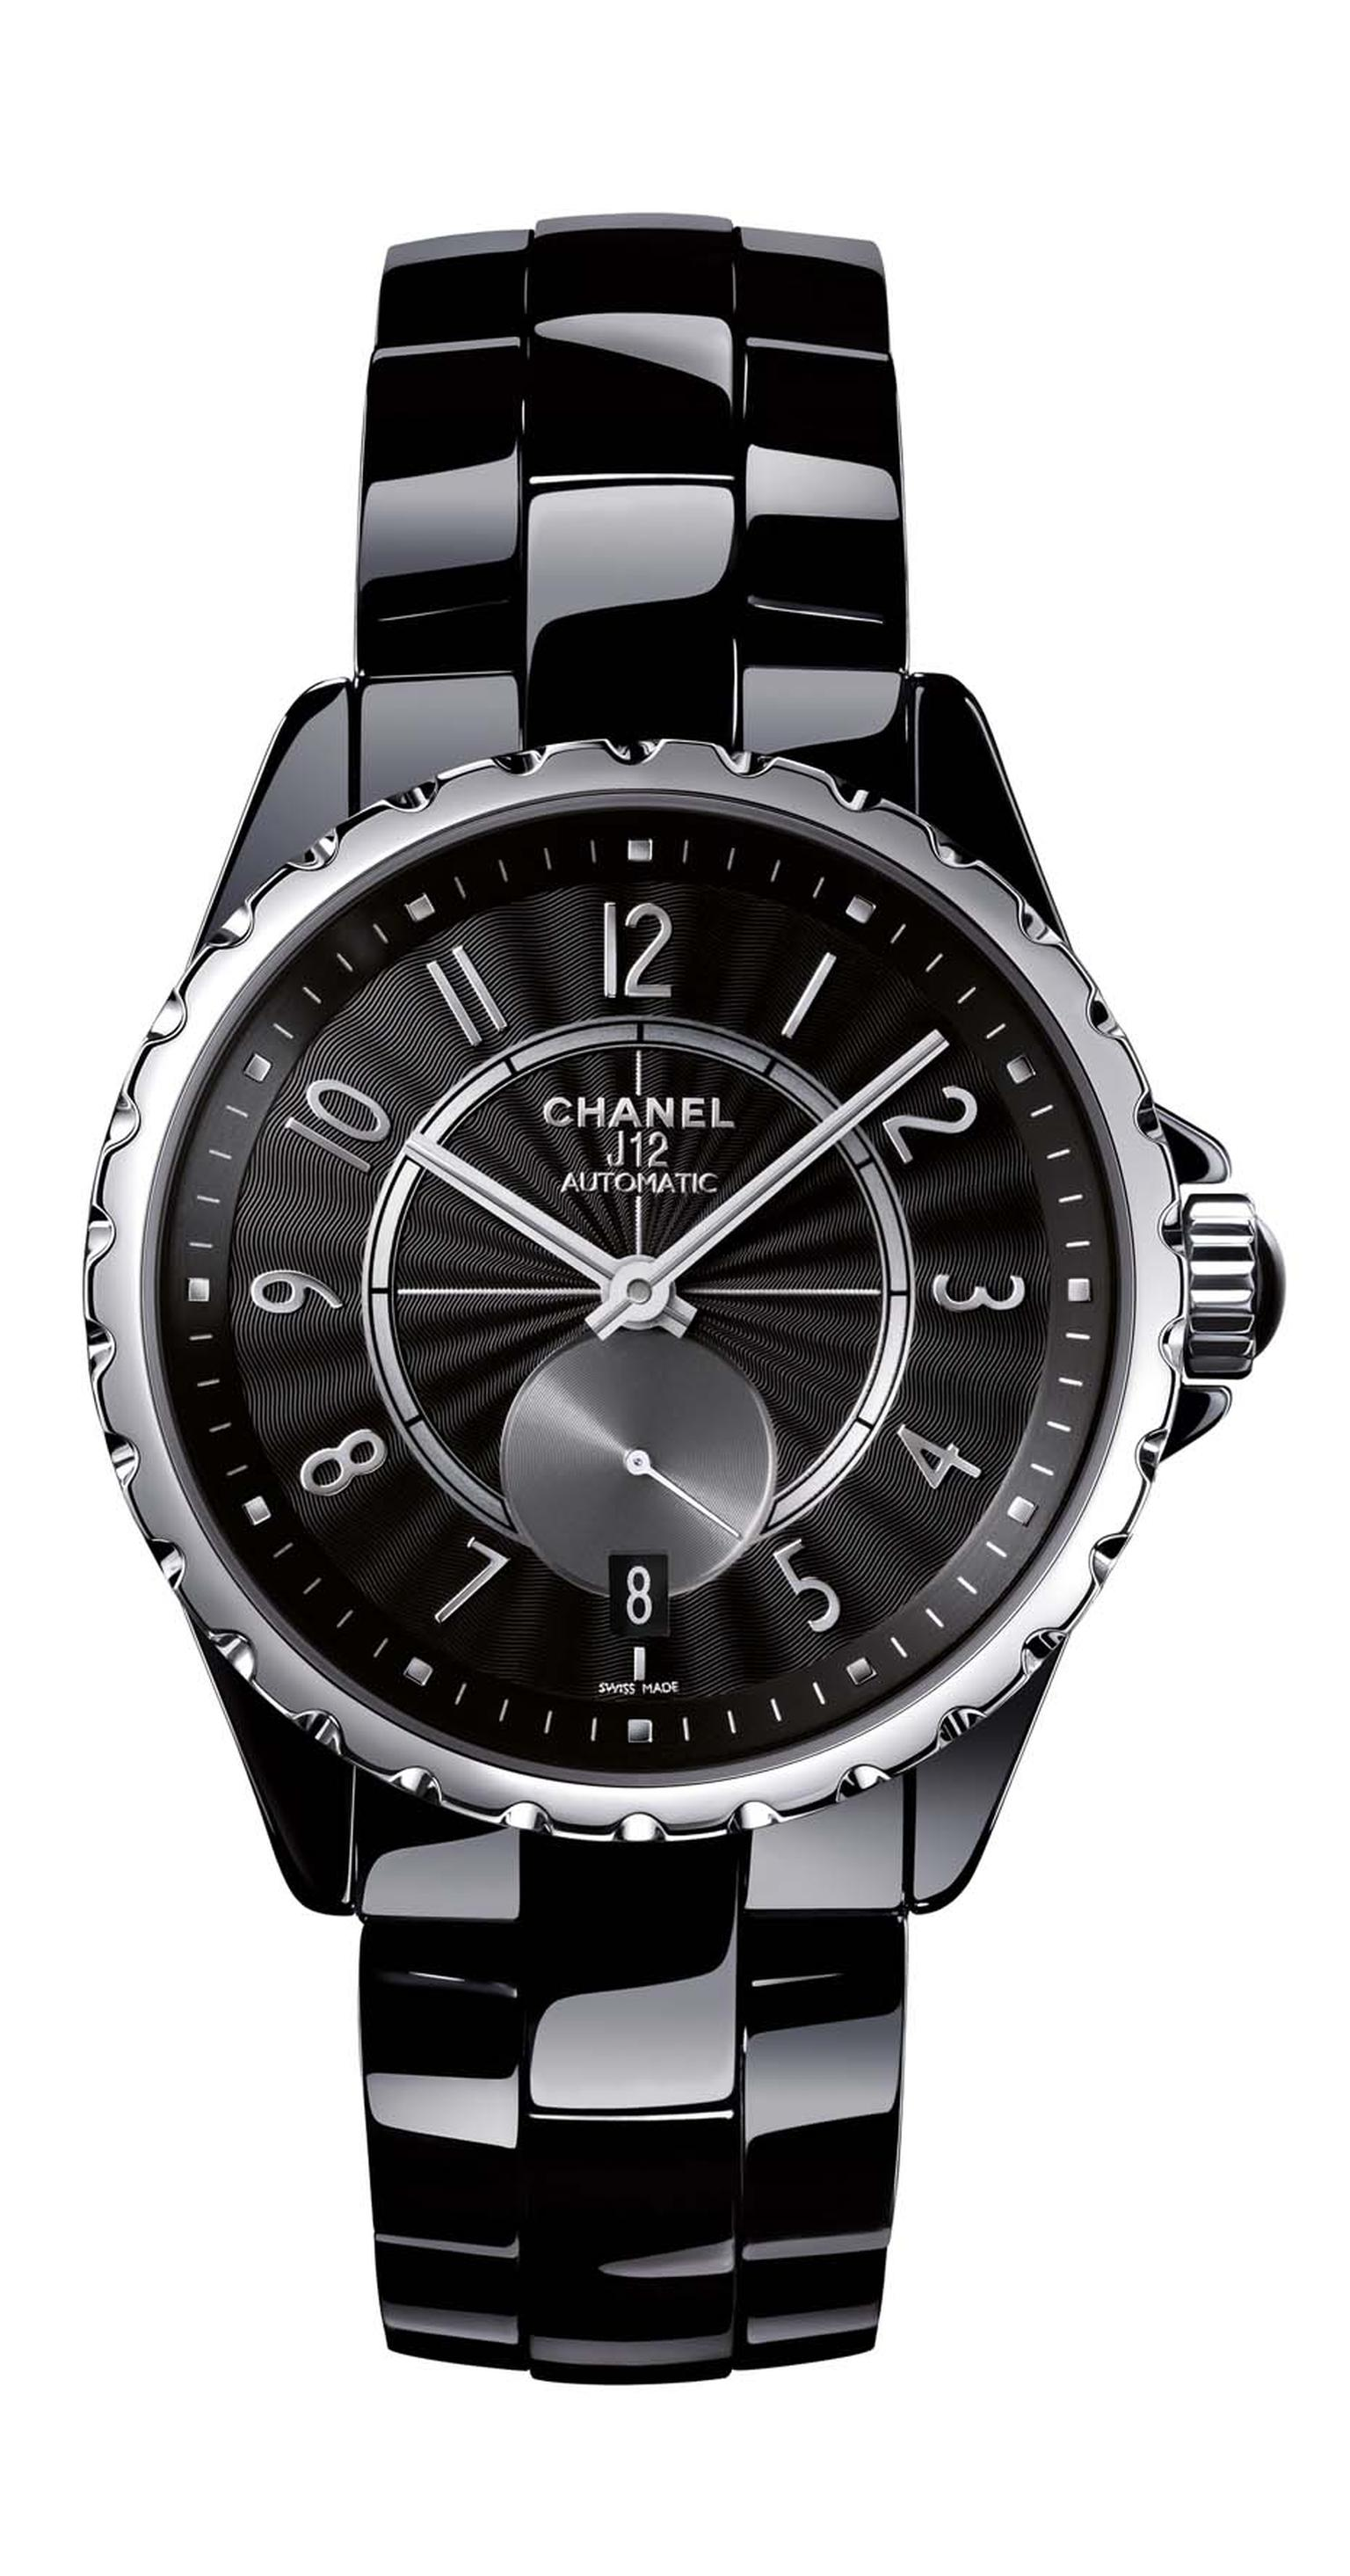 Chanel J12-365 black high-tech ceramic watch featuring a self-winding mechanical movement and A 42-hour power reserve.